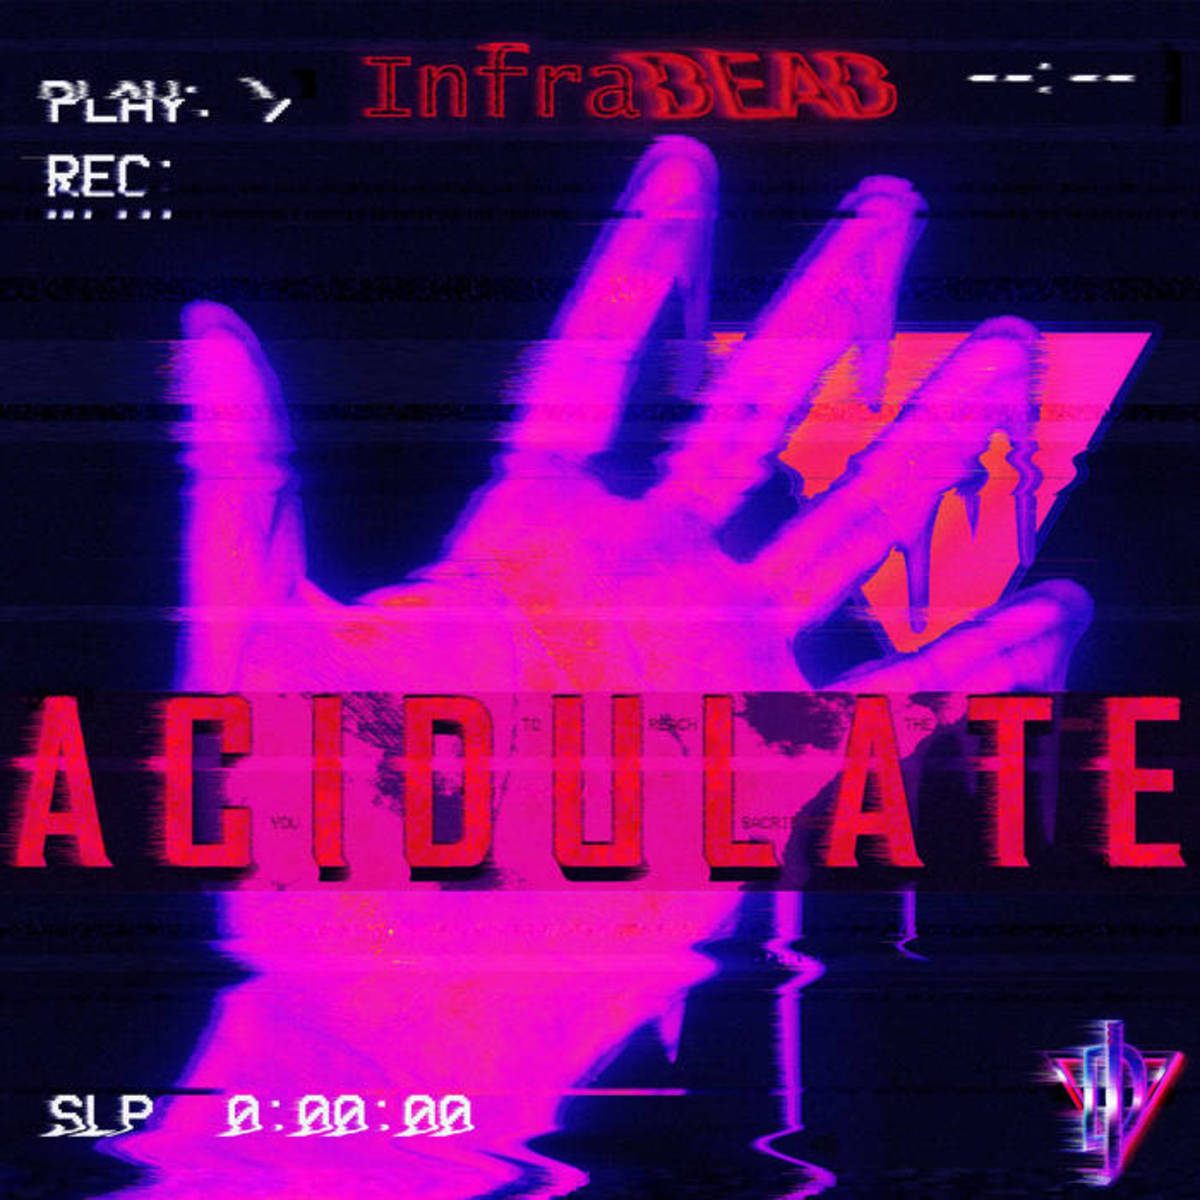 synth-singles-reviewed-acidulate-and-sacred-tongue-by-infradead